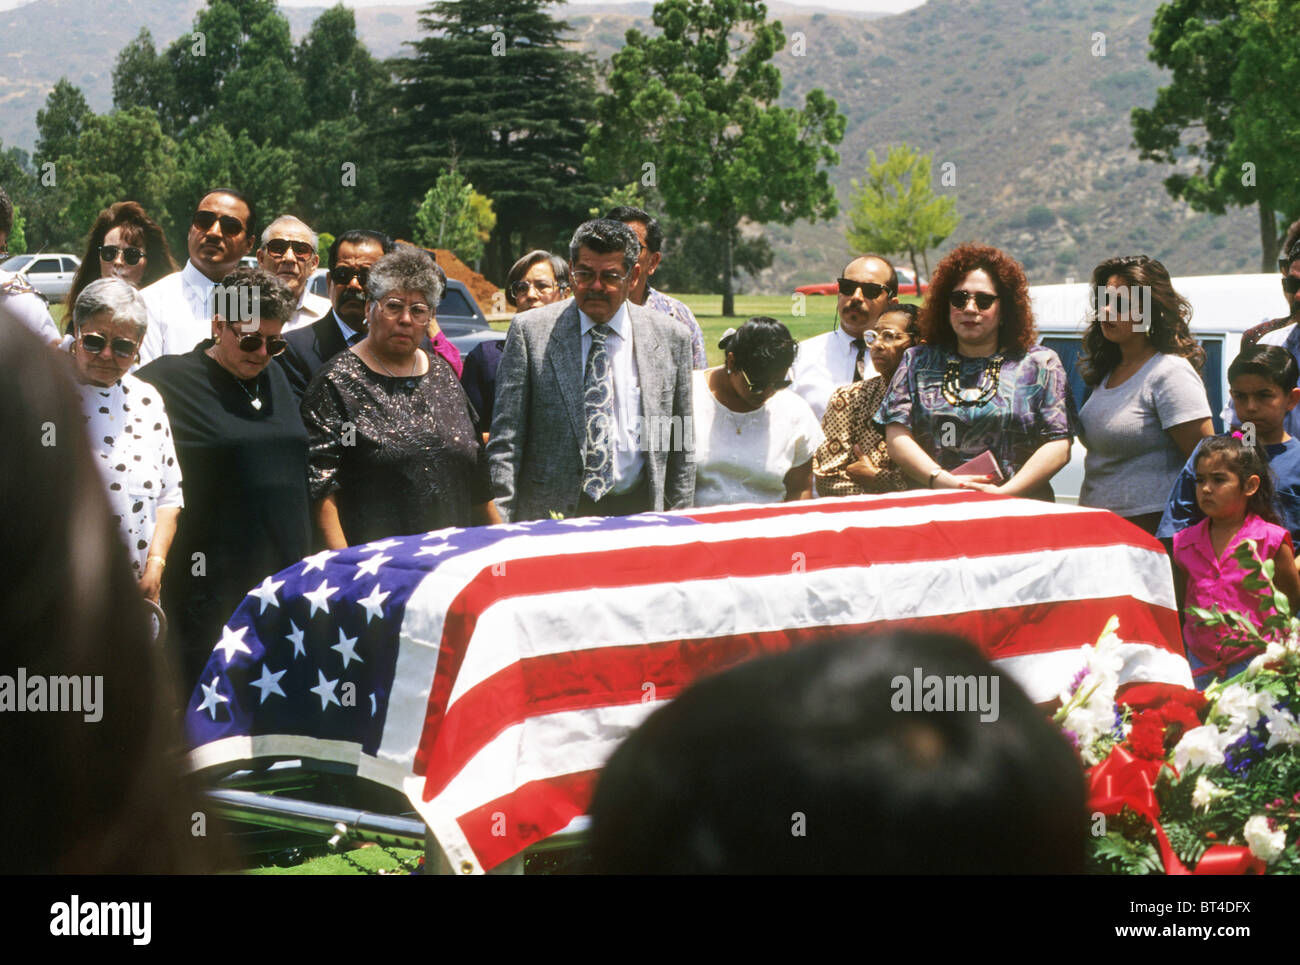 Hispanic family funeral burial cemetery ceremony rite dead death pass away sad grief cry weep love flag drape casket - Stock Image